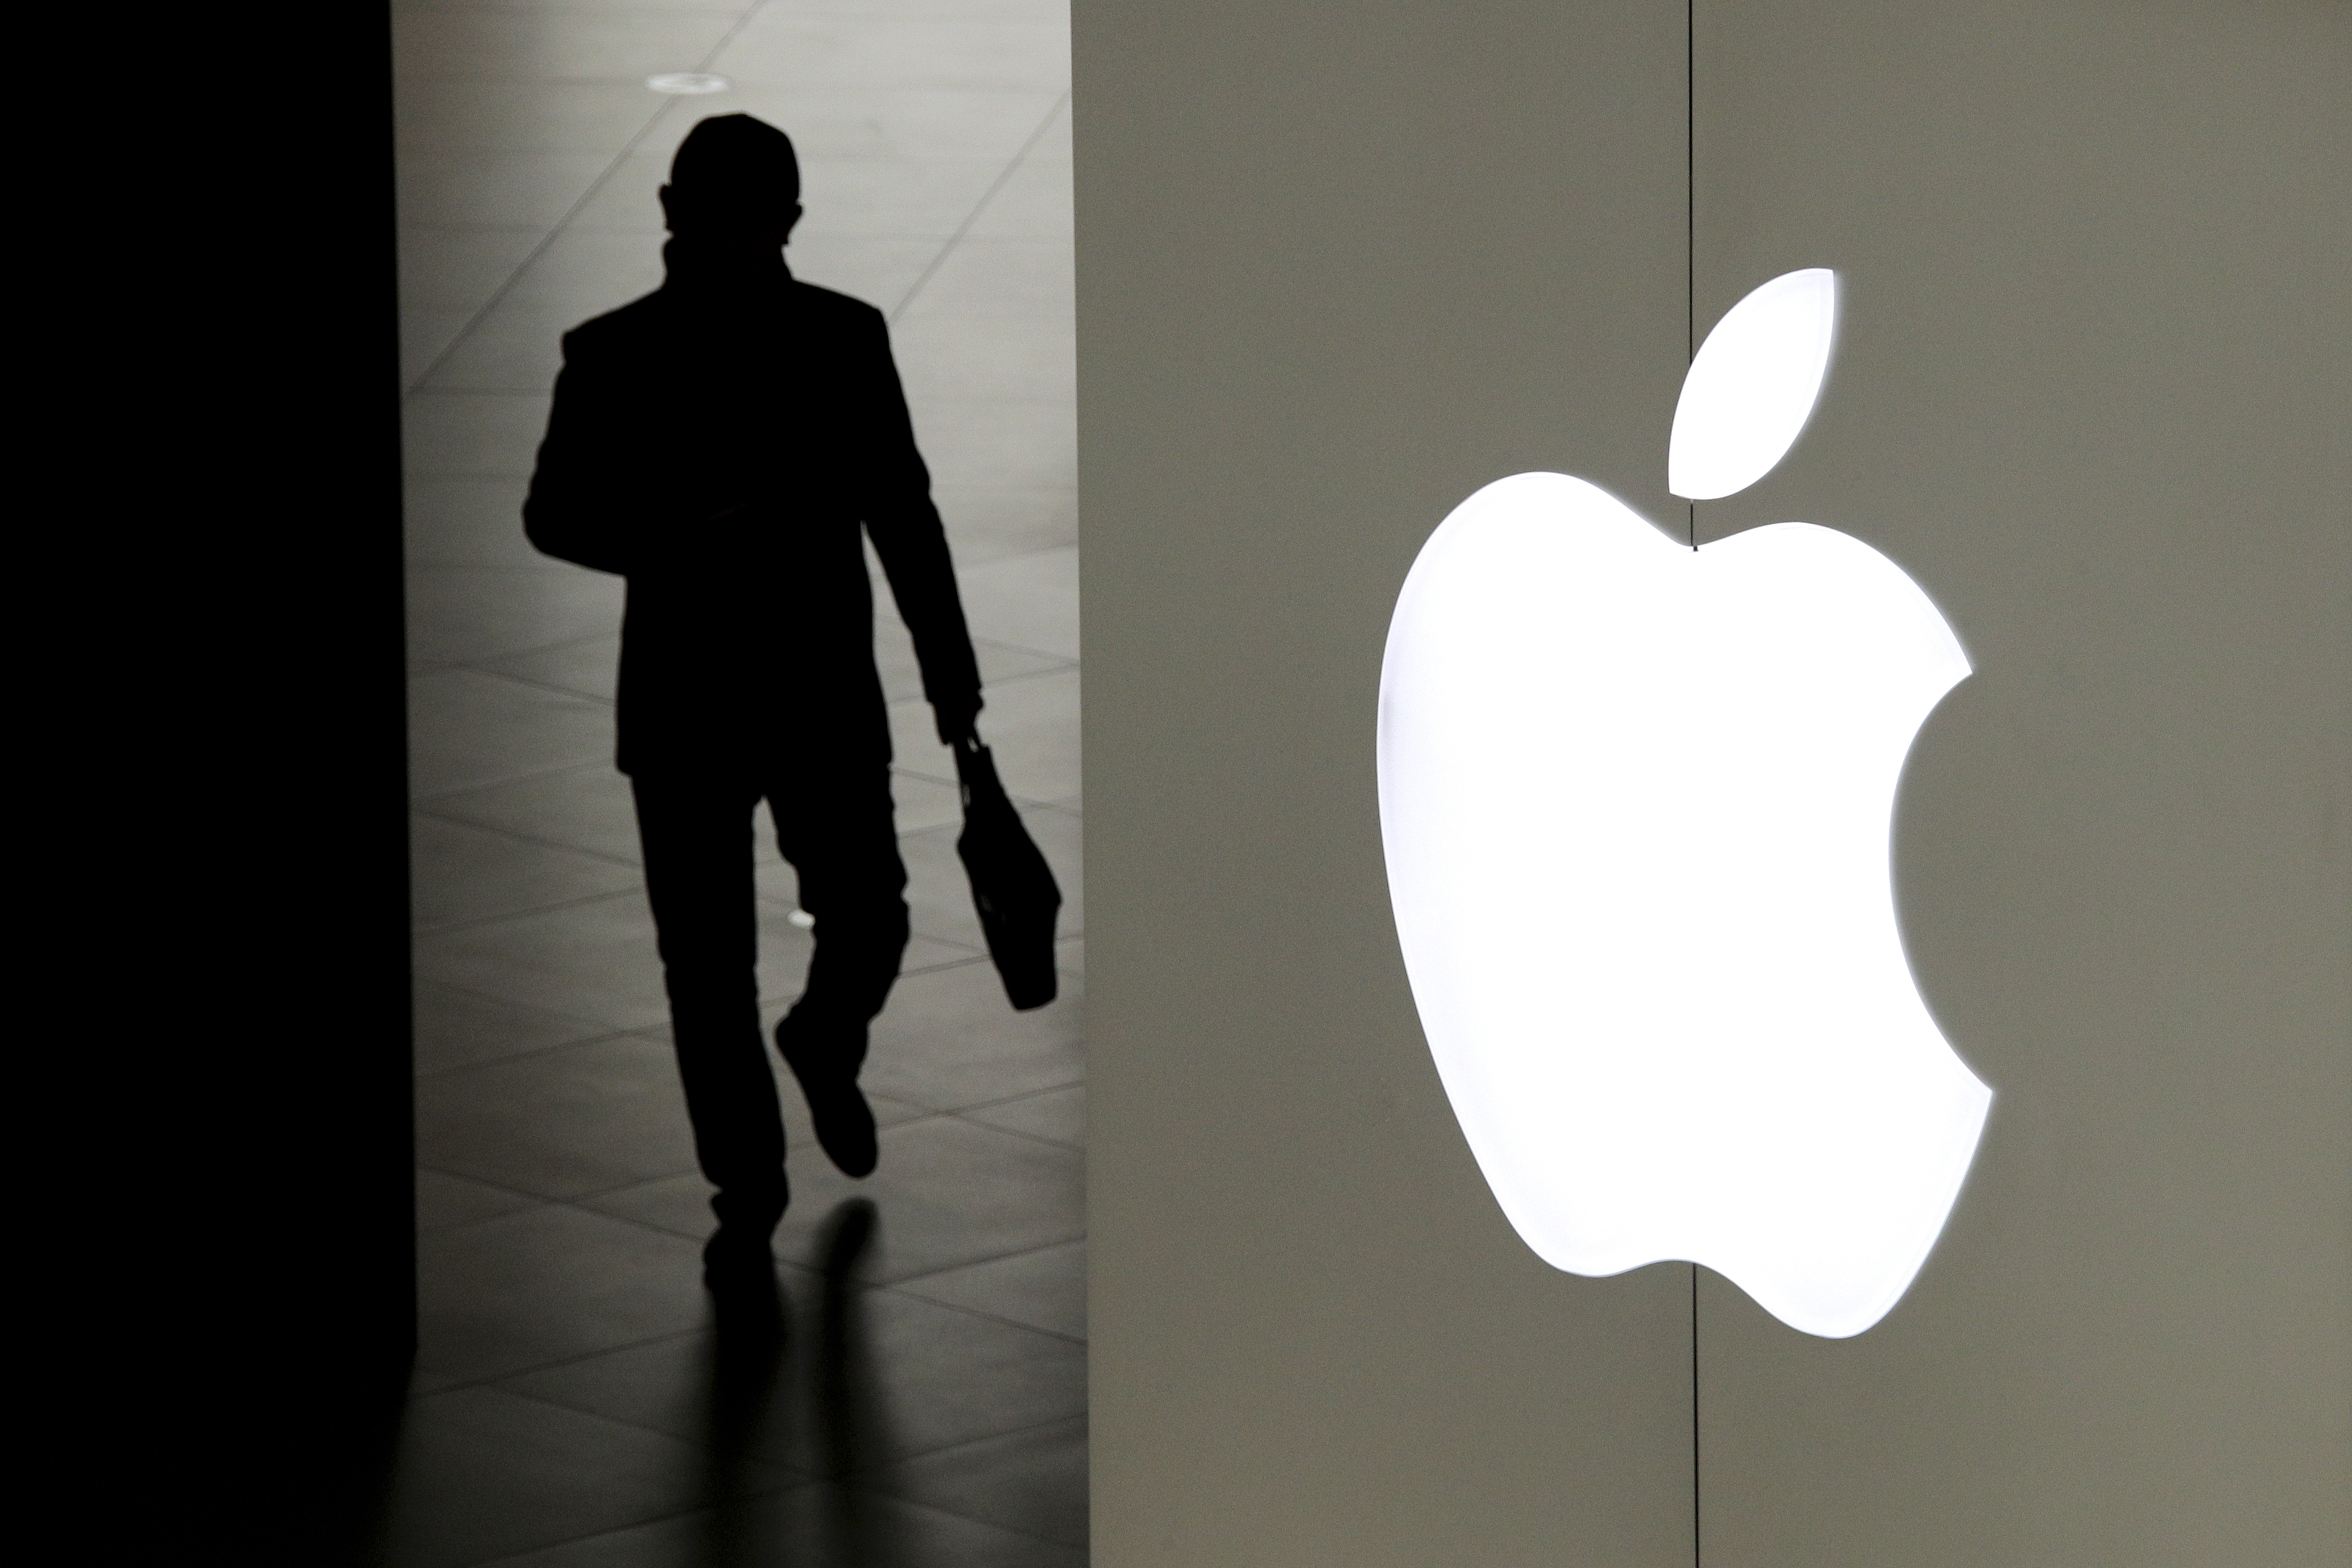 Apple (AAPL) is the world's most valuable company, with a market cap of $3.3 trillion.